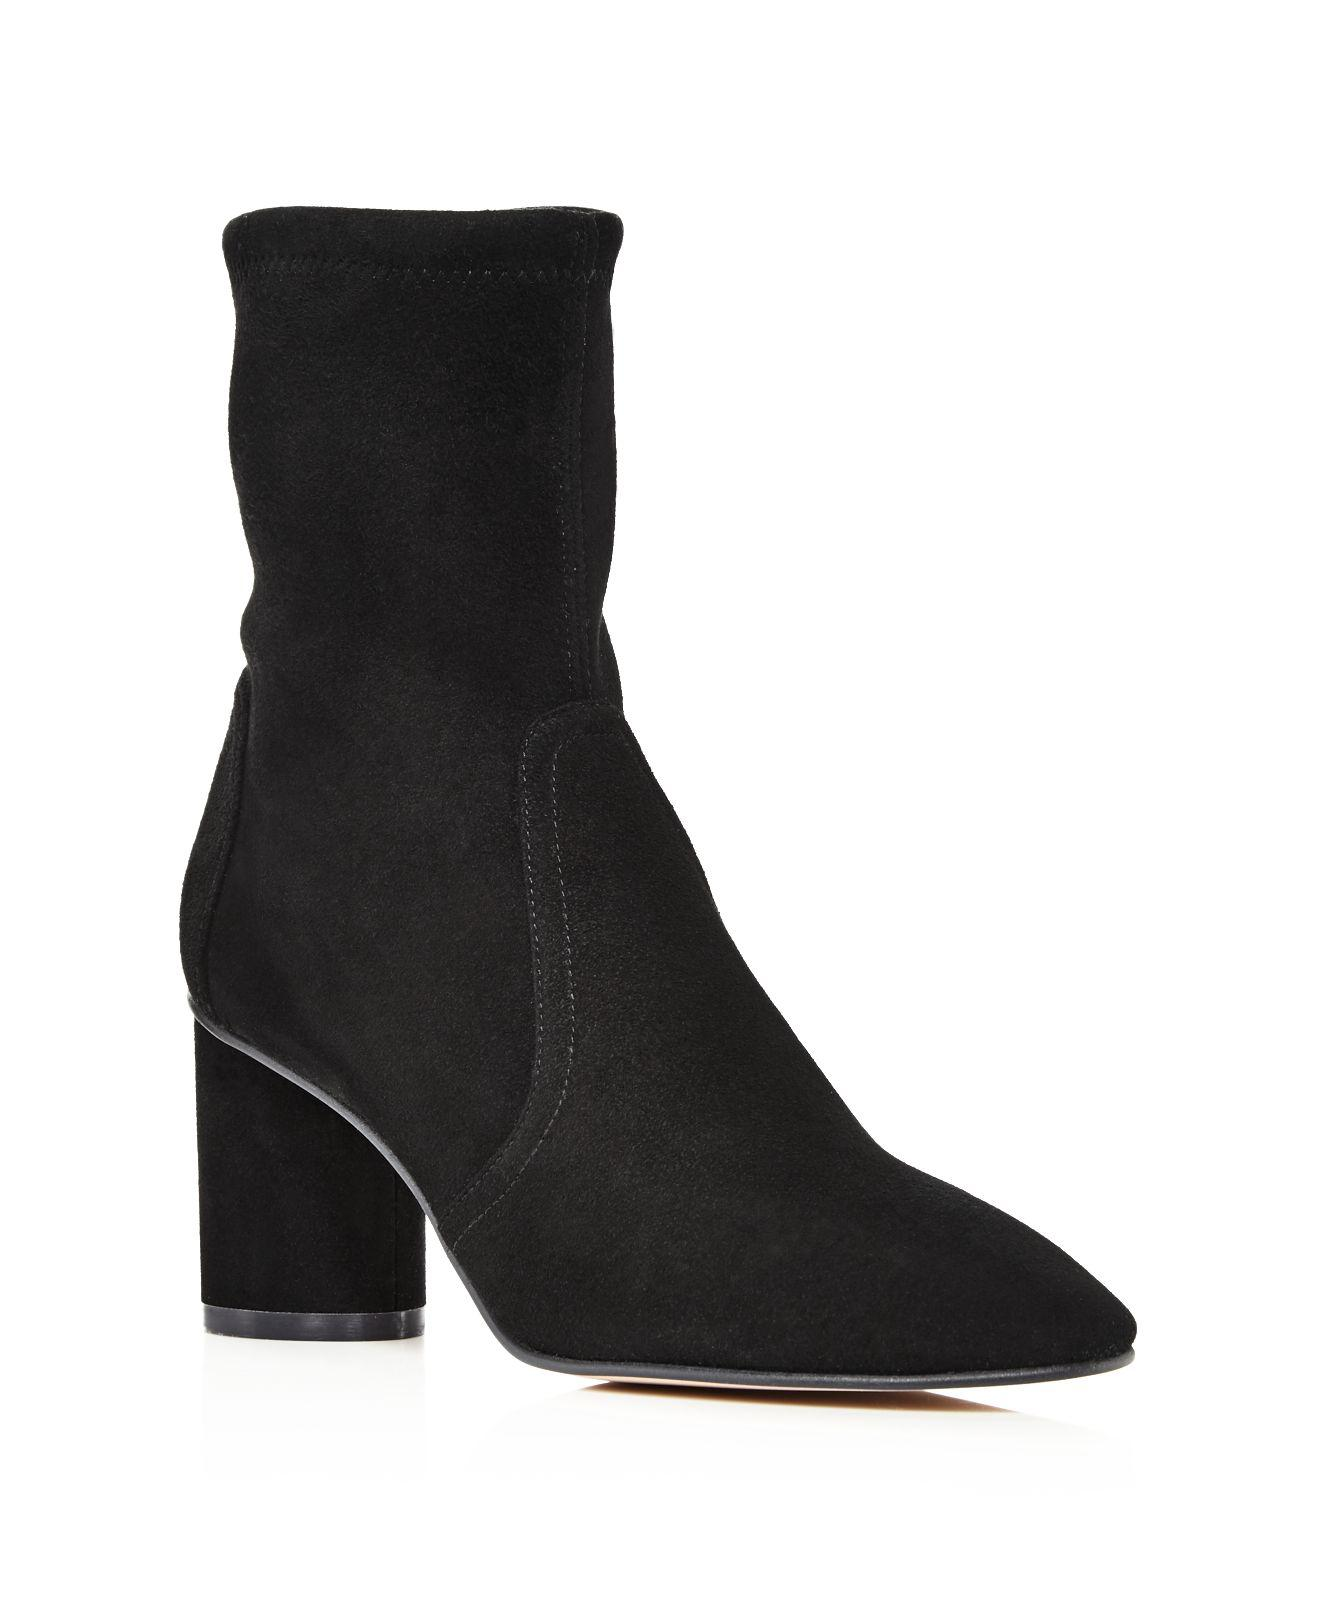 Stuart Weitzman Women's Margot Suede Block Heel Booties